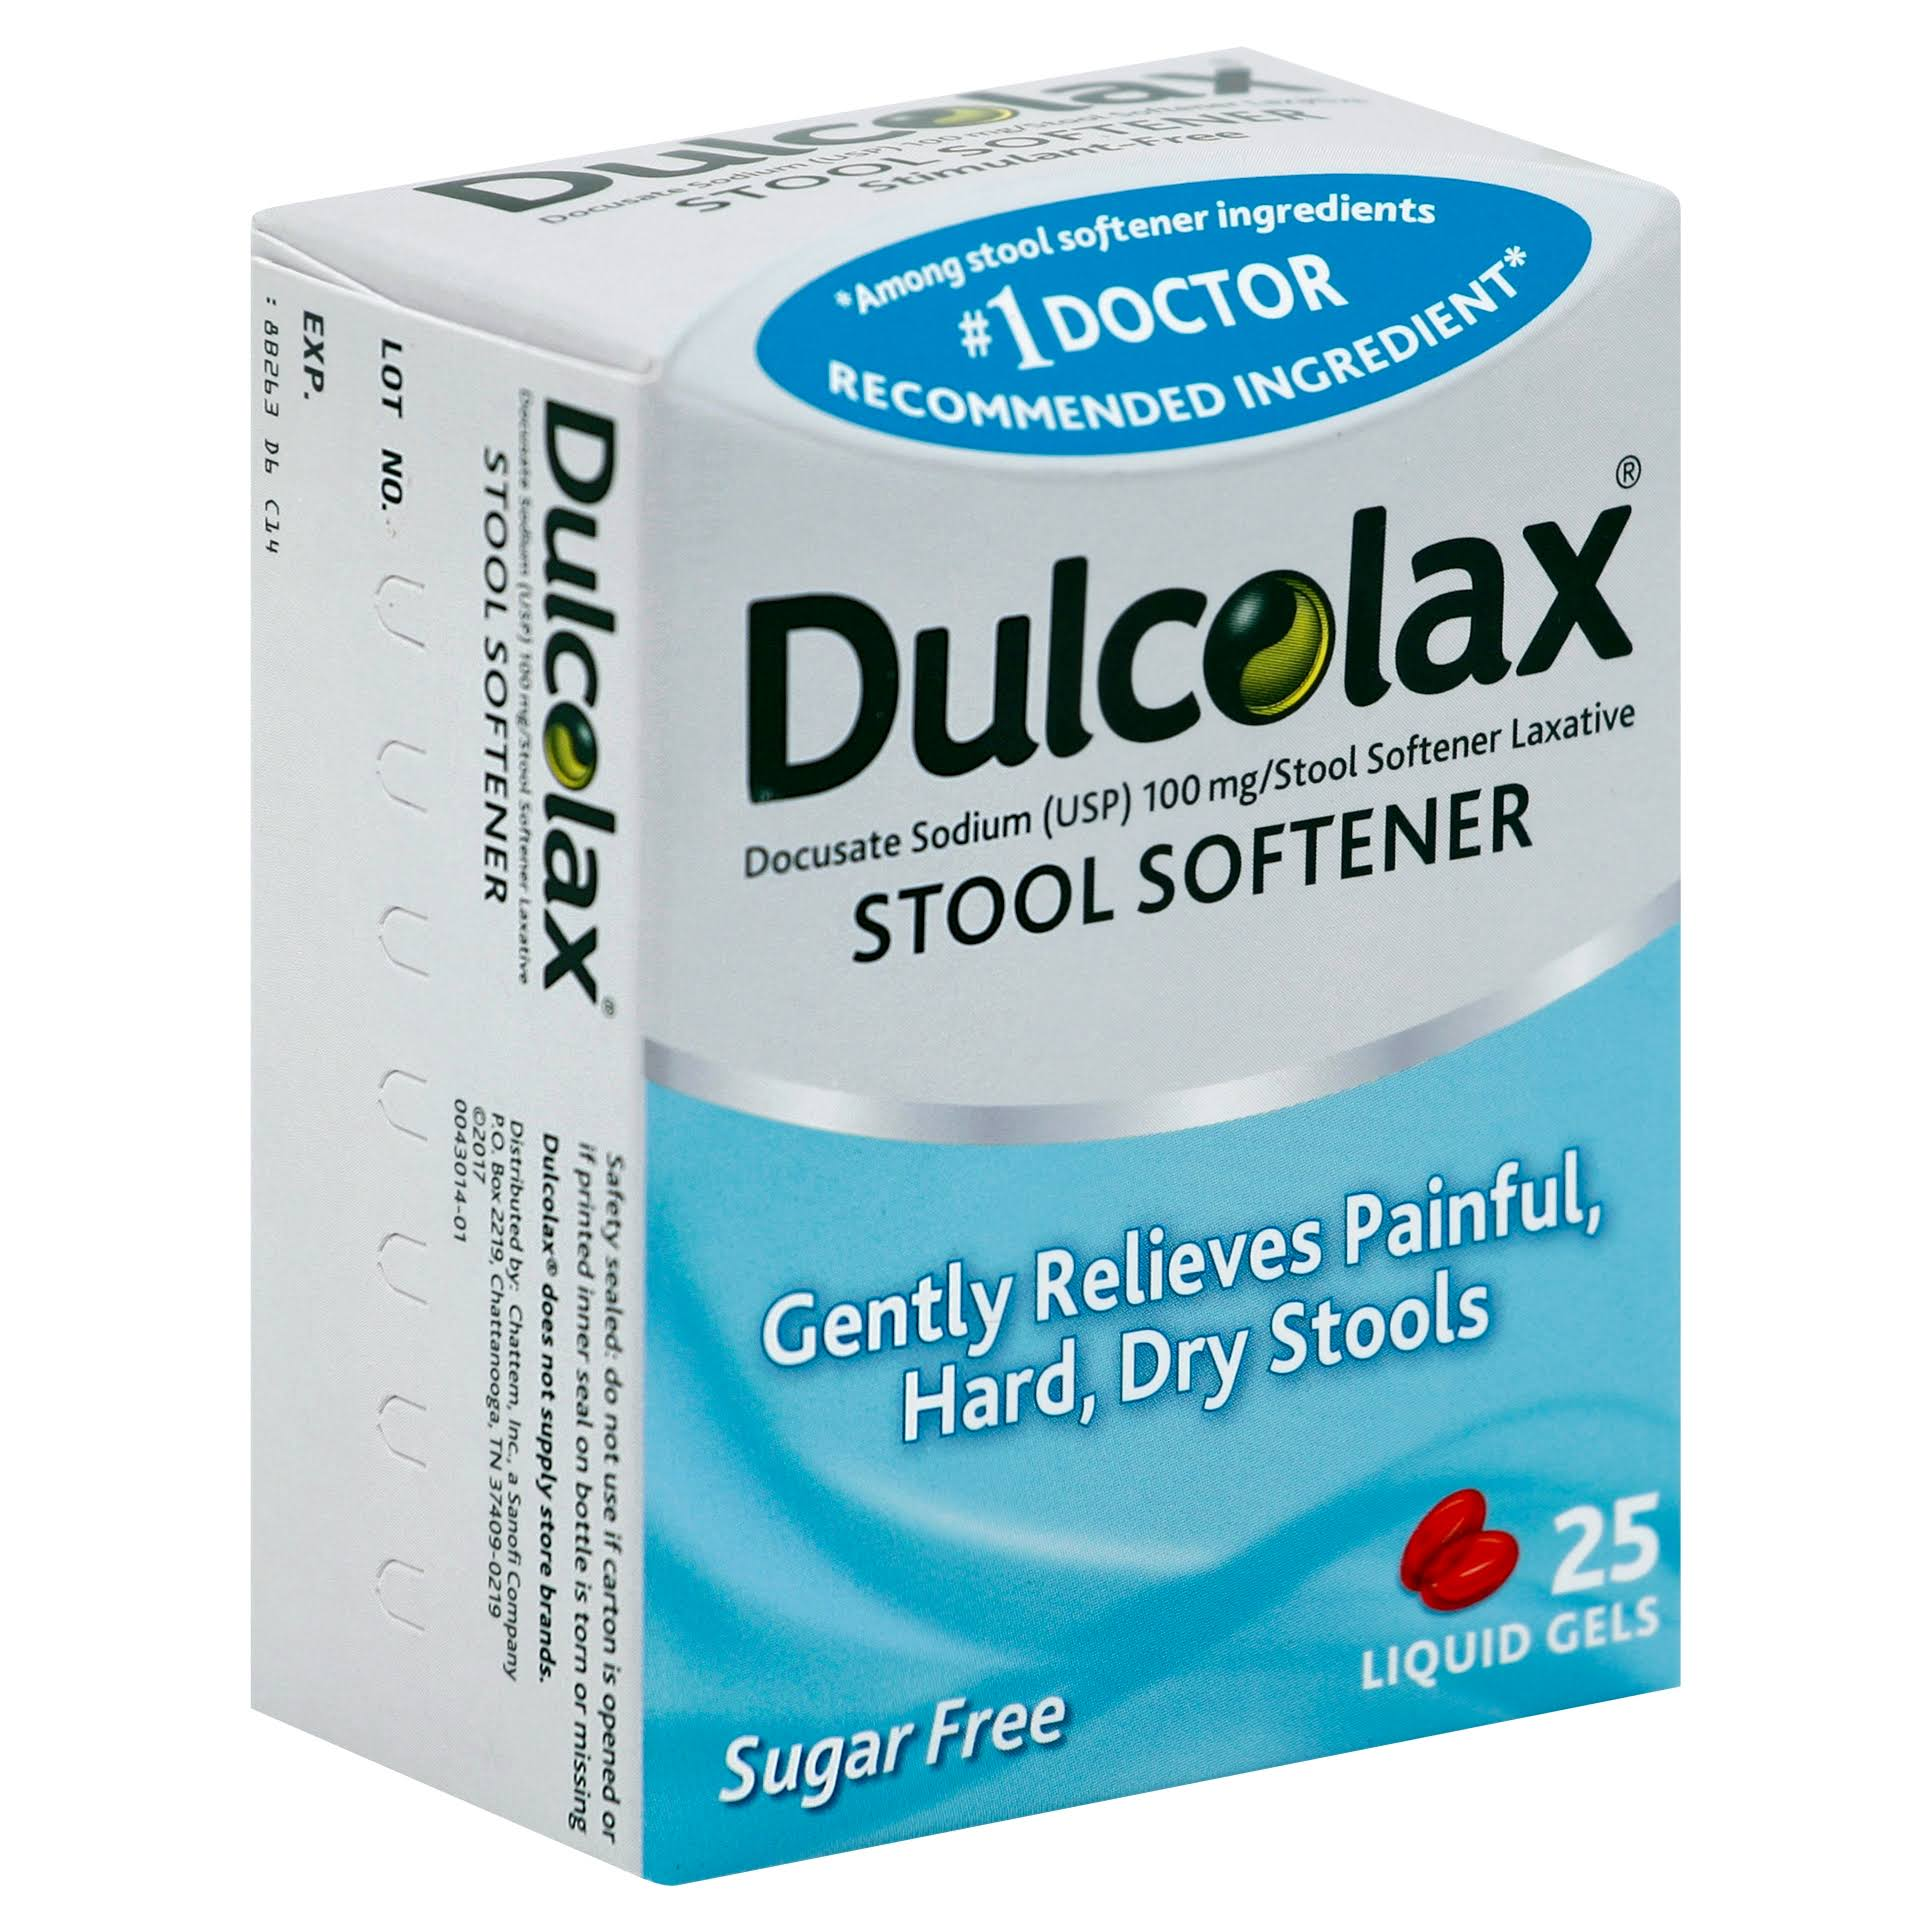 Dulcolax Stool Softener Constipation Relief - 25 Liquid Gels